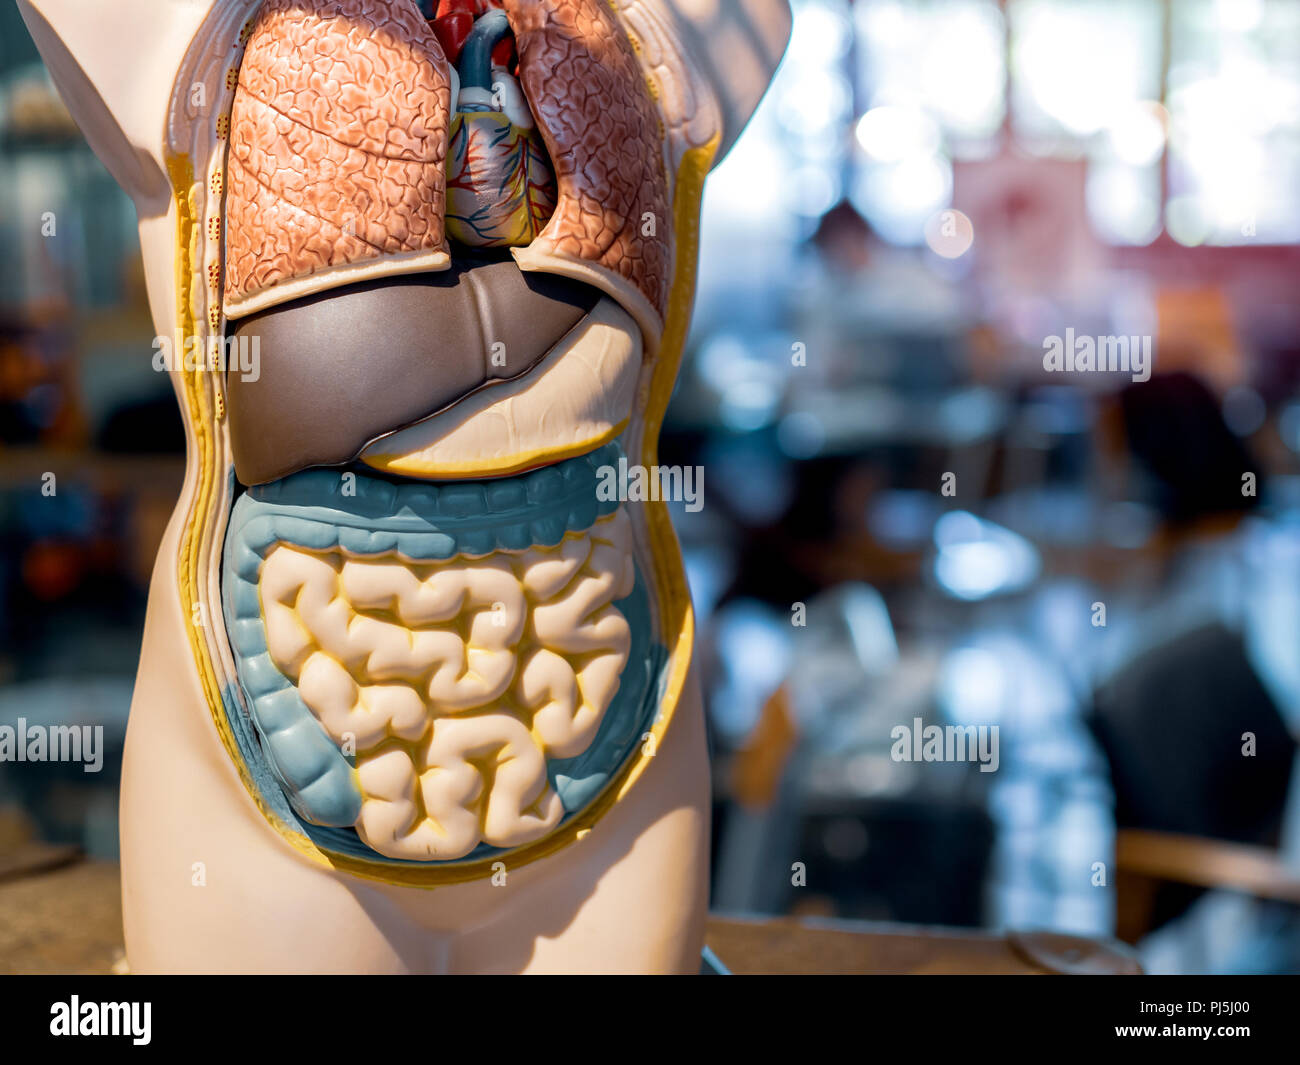 Anatomy human body model on classroom background. Part of human body model with organ system. Medical education concept. - Stock Image